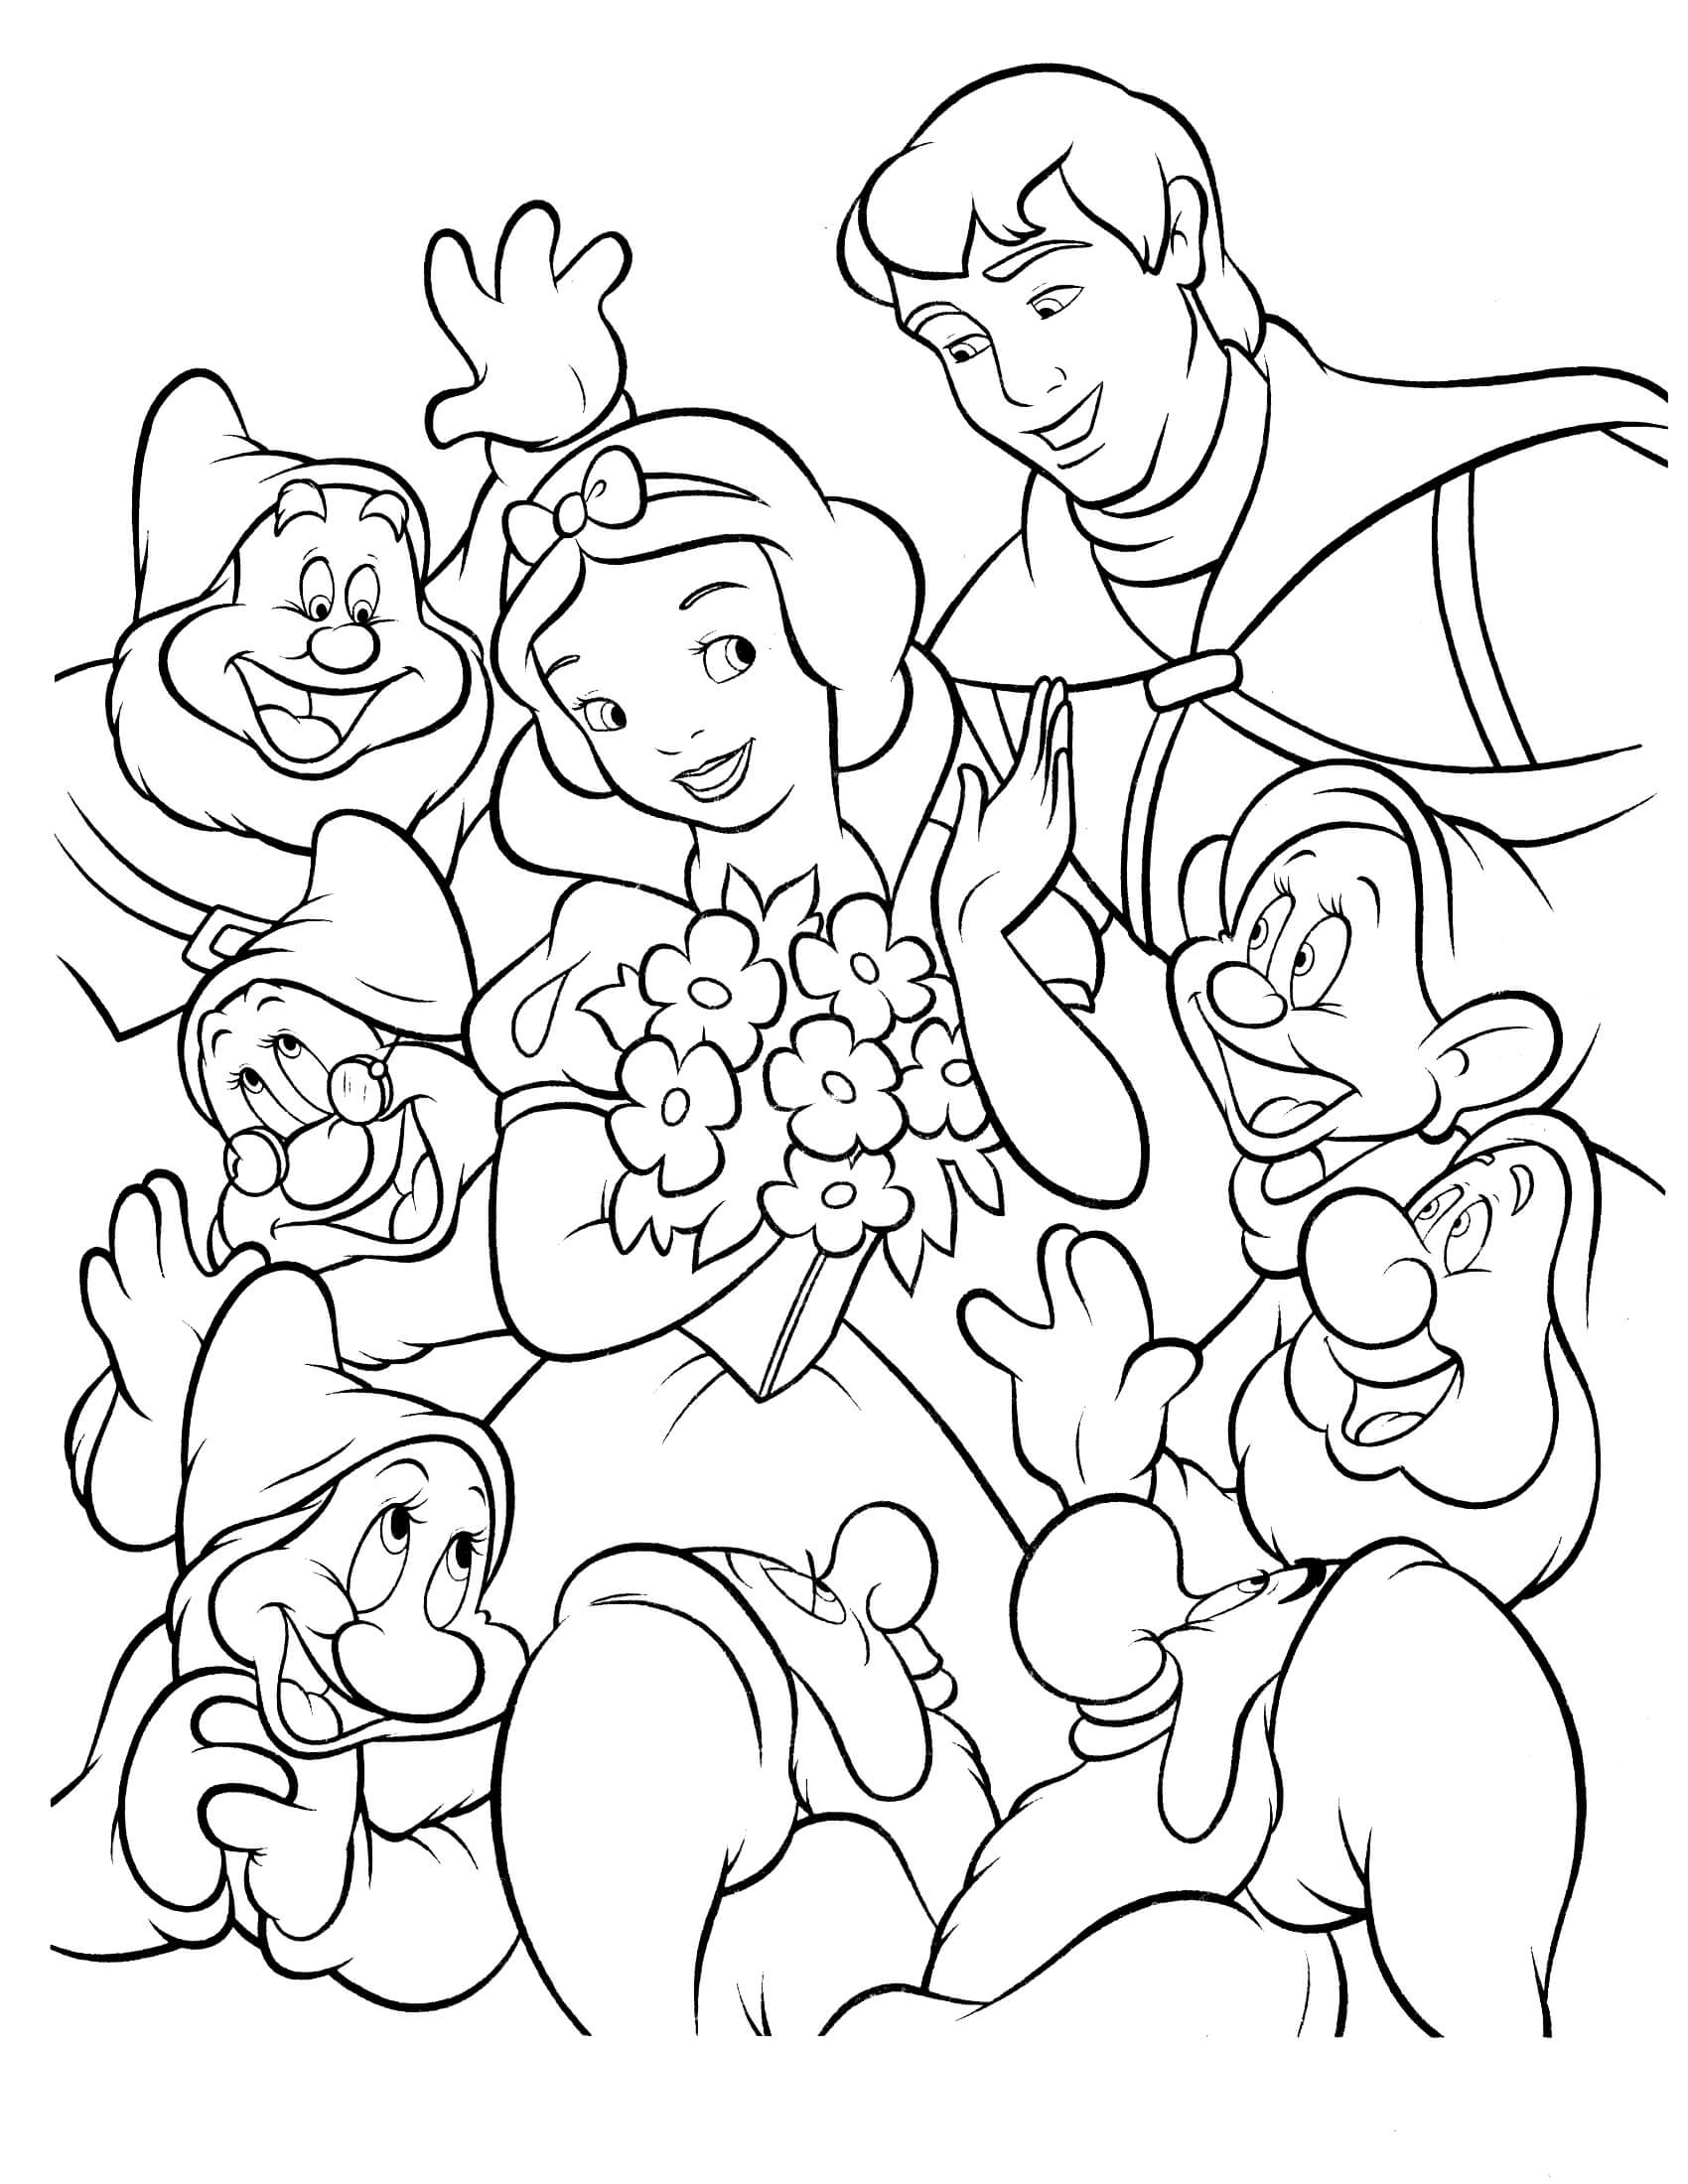 snowwhite coloring snow white coloring pages to download and print for free snowwhite coloring